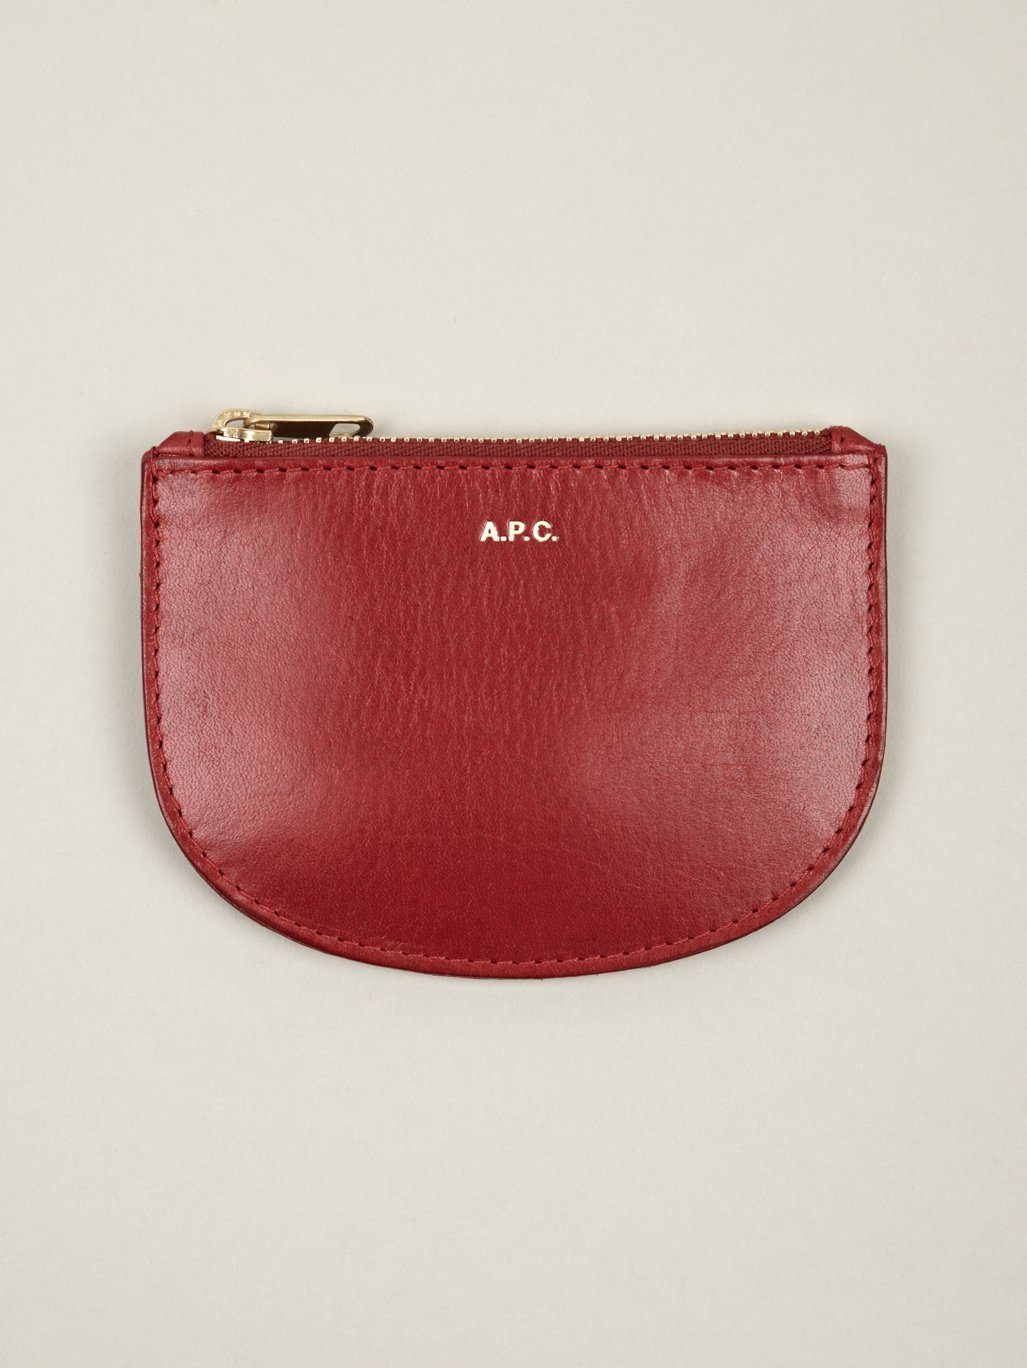 APC Men's Coin Holder